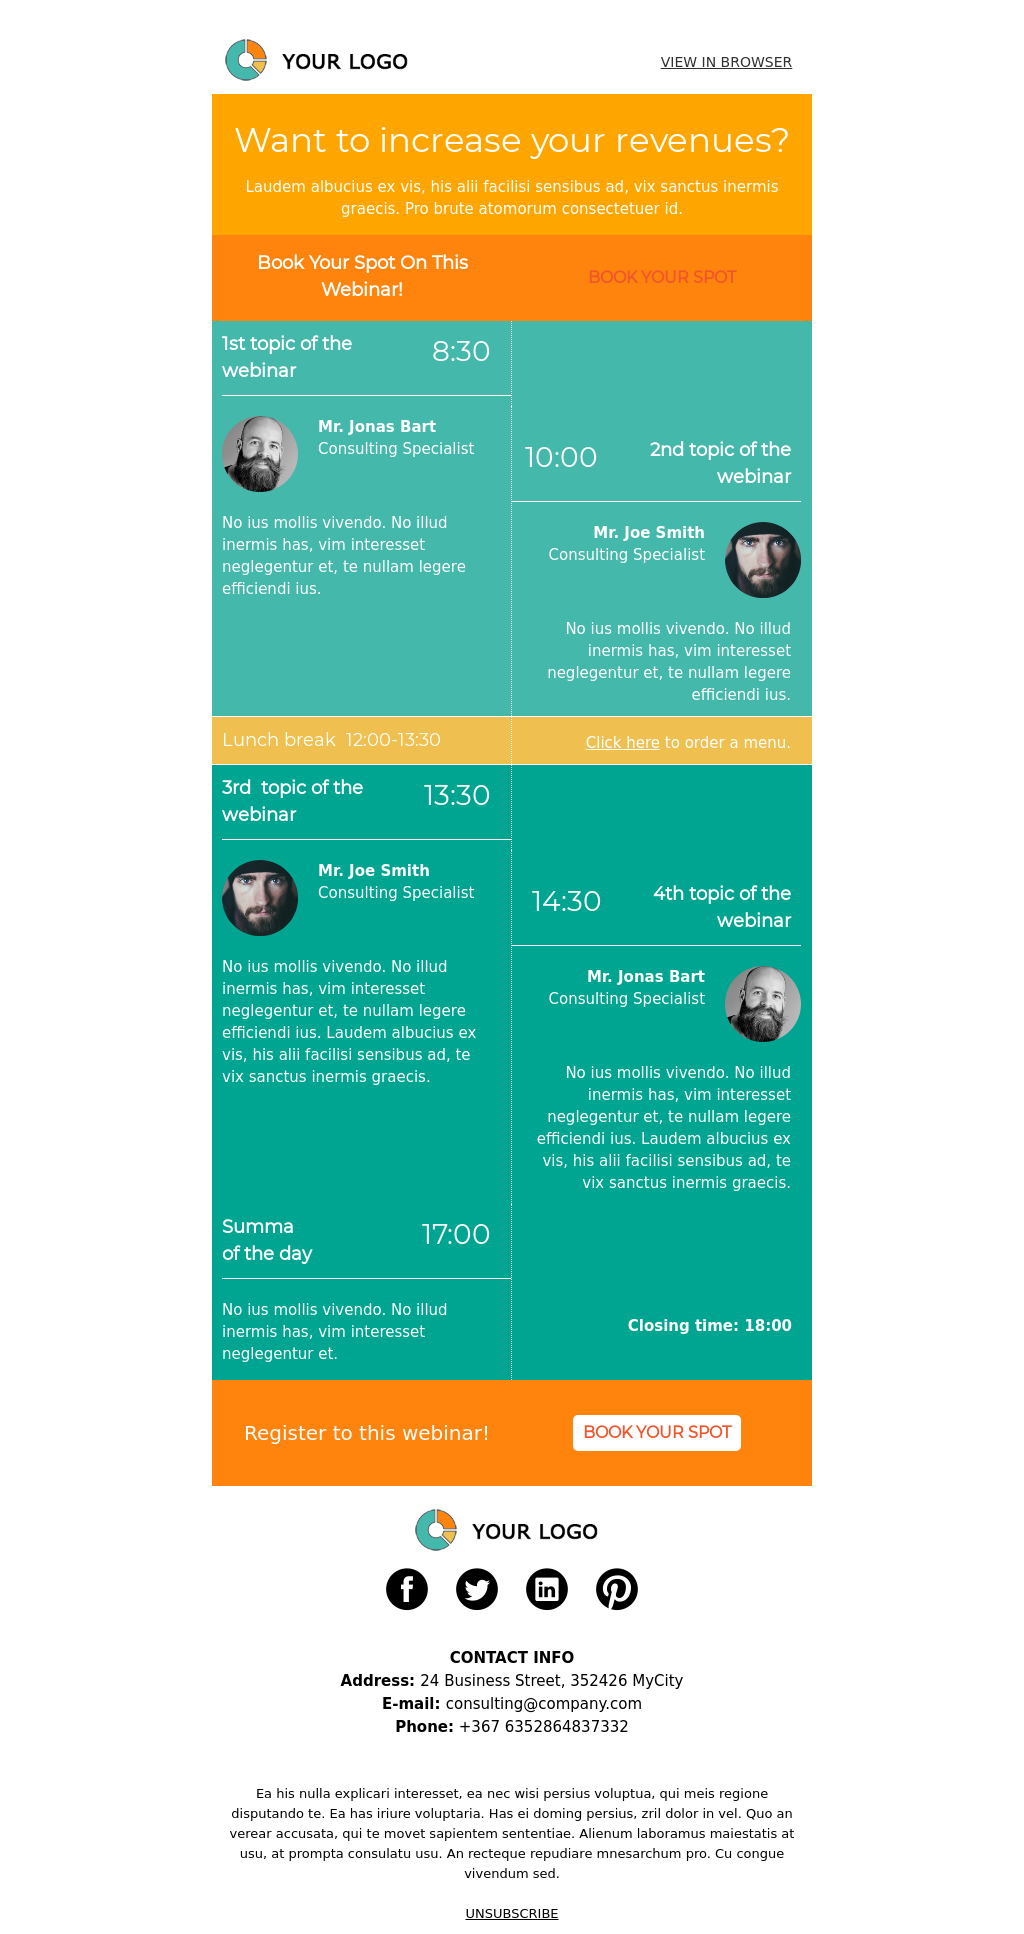 Colorful template for webinars